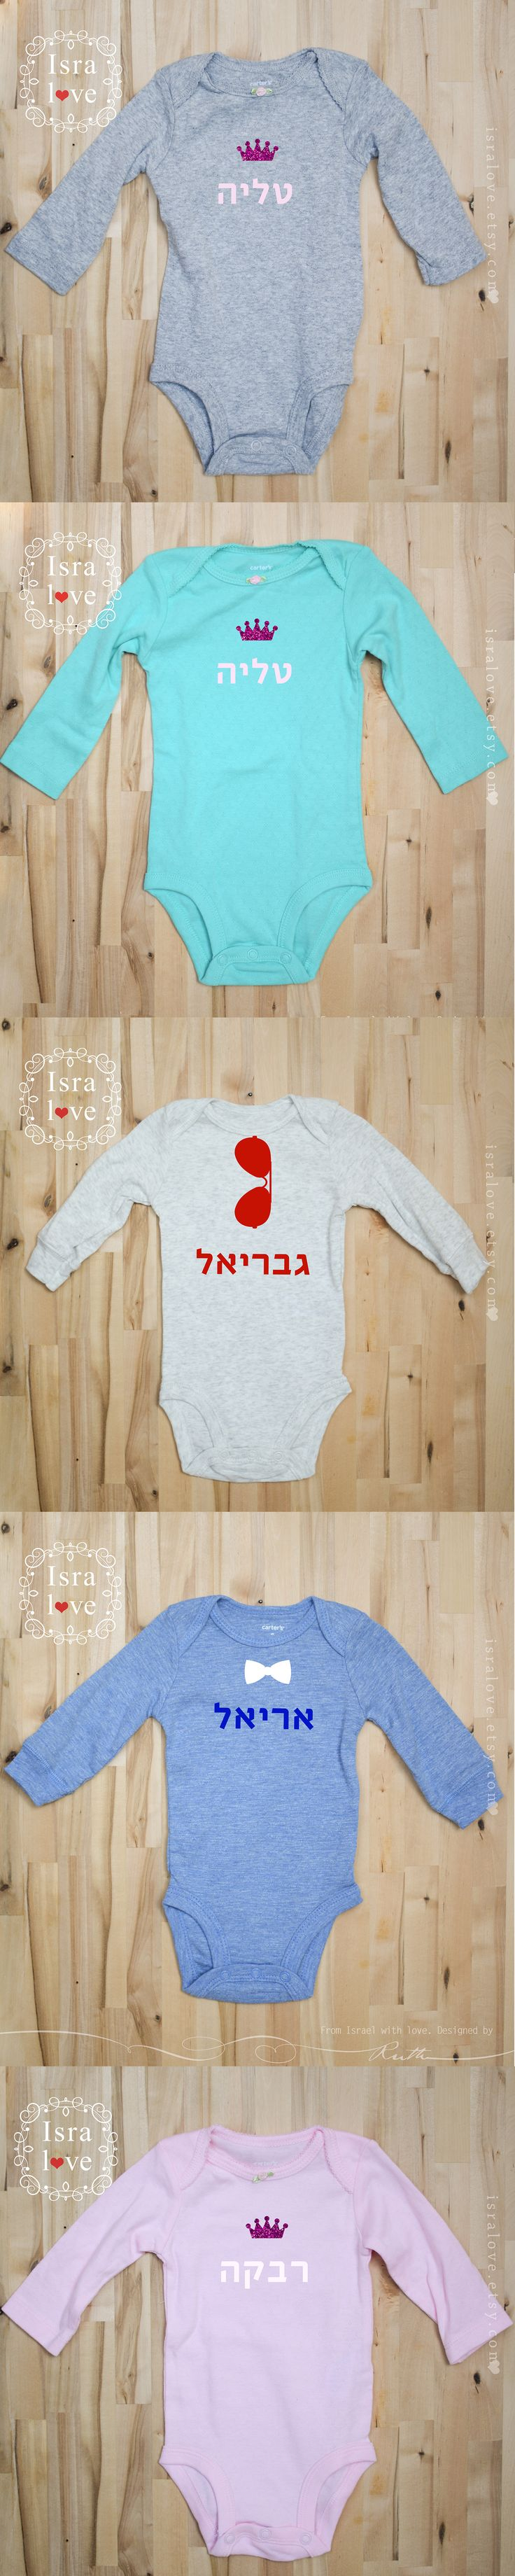 Such a great gift for Jewish babies. These onesies have the Jewish / Hebrew name on them next to a bow tie, aviator sunglasses or a princess crown. So adorable for a brit milah, jewish baby naming, personalized Jewish gift. By Isralove on Etsy. Made in Israel.